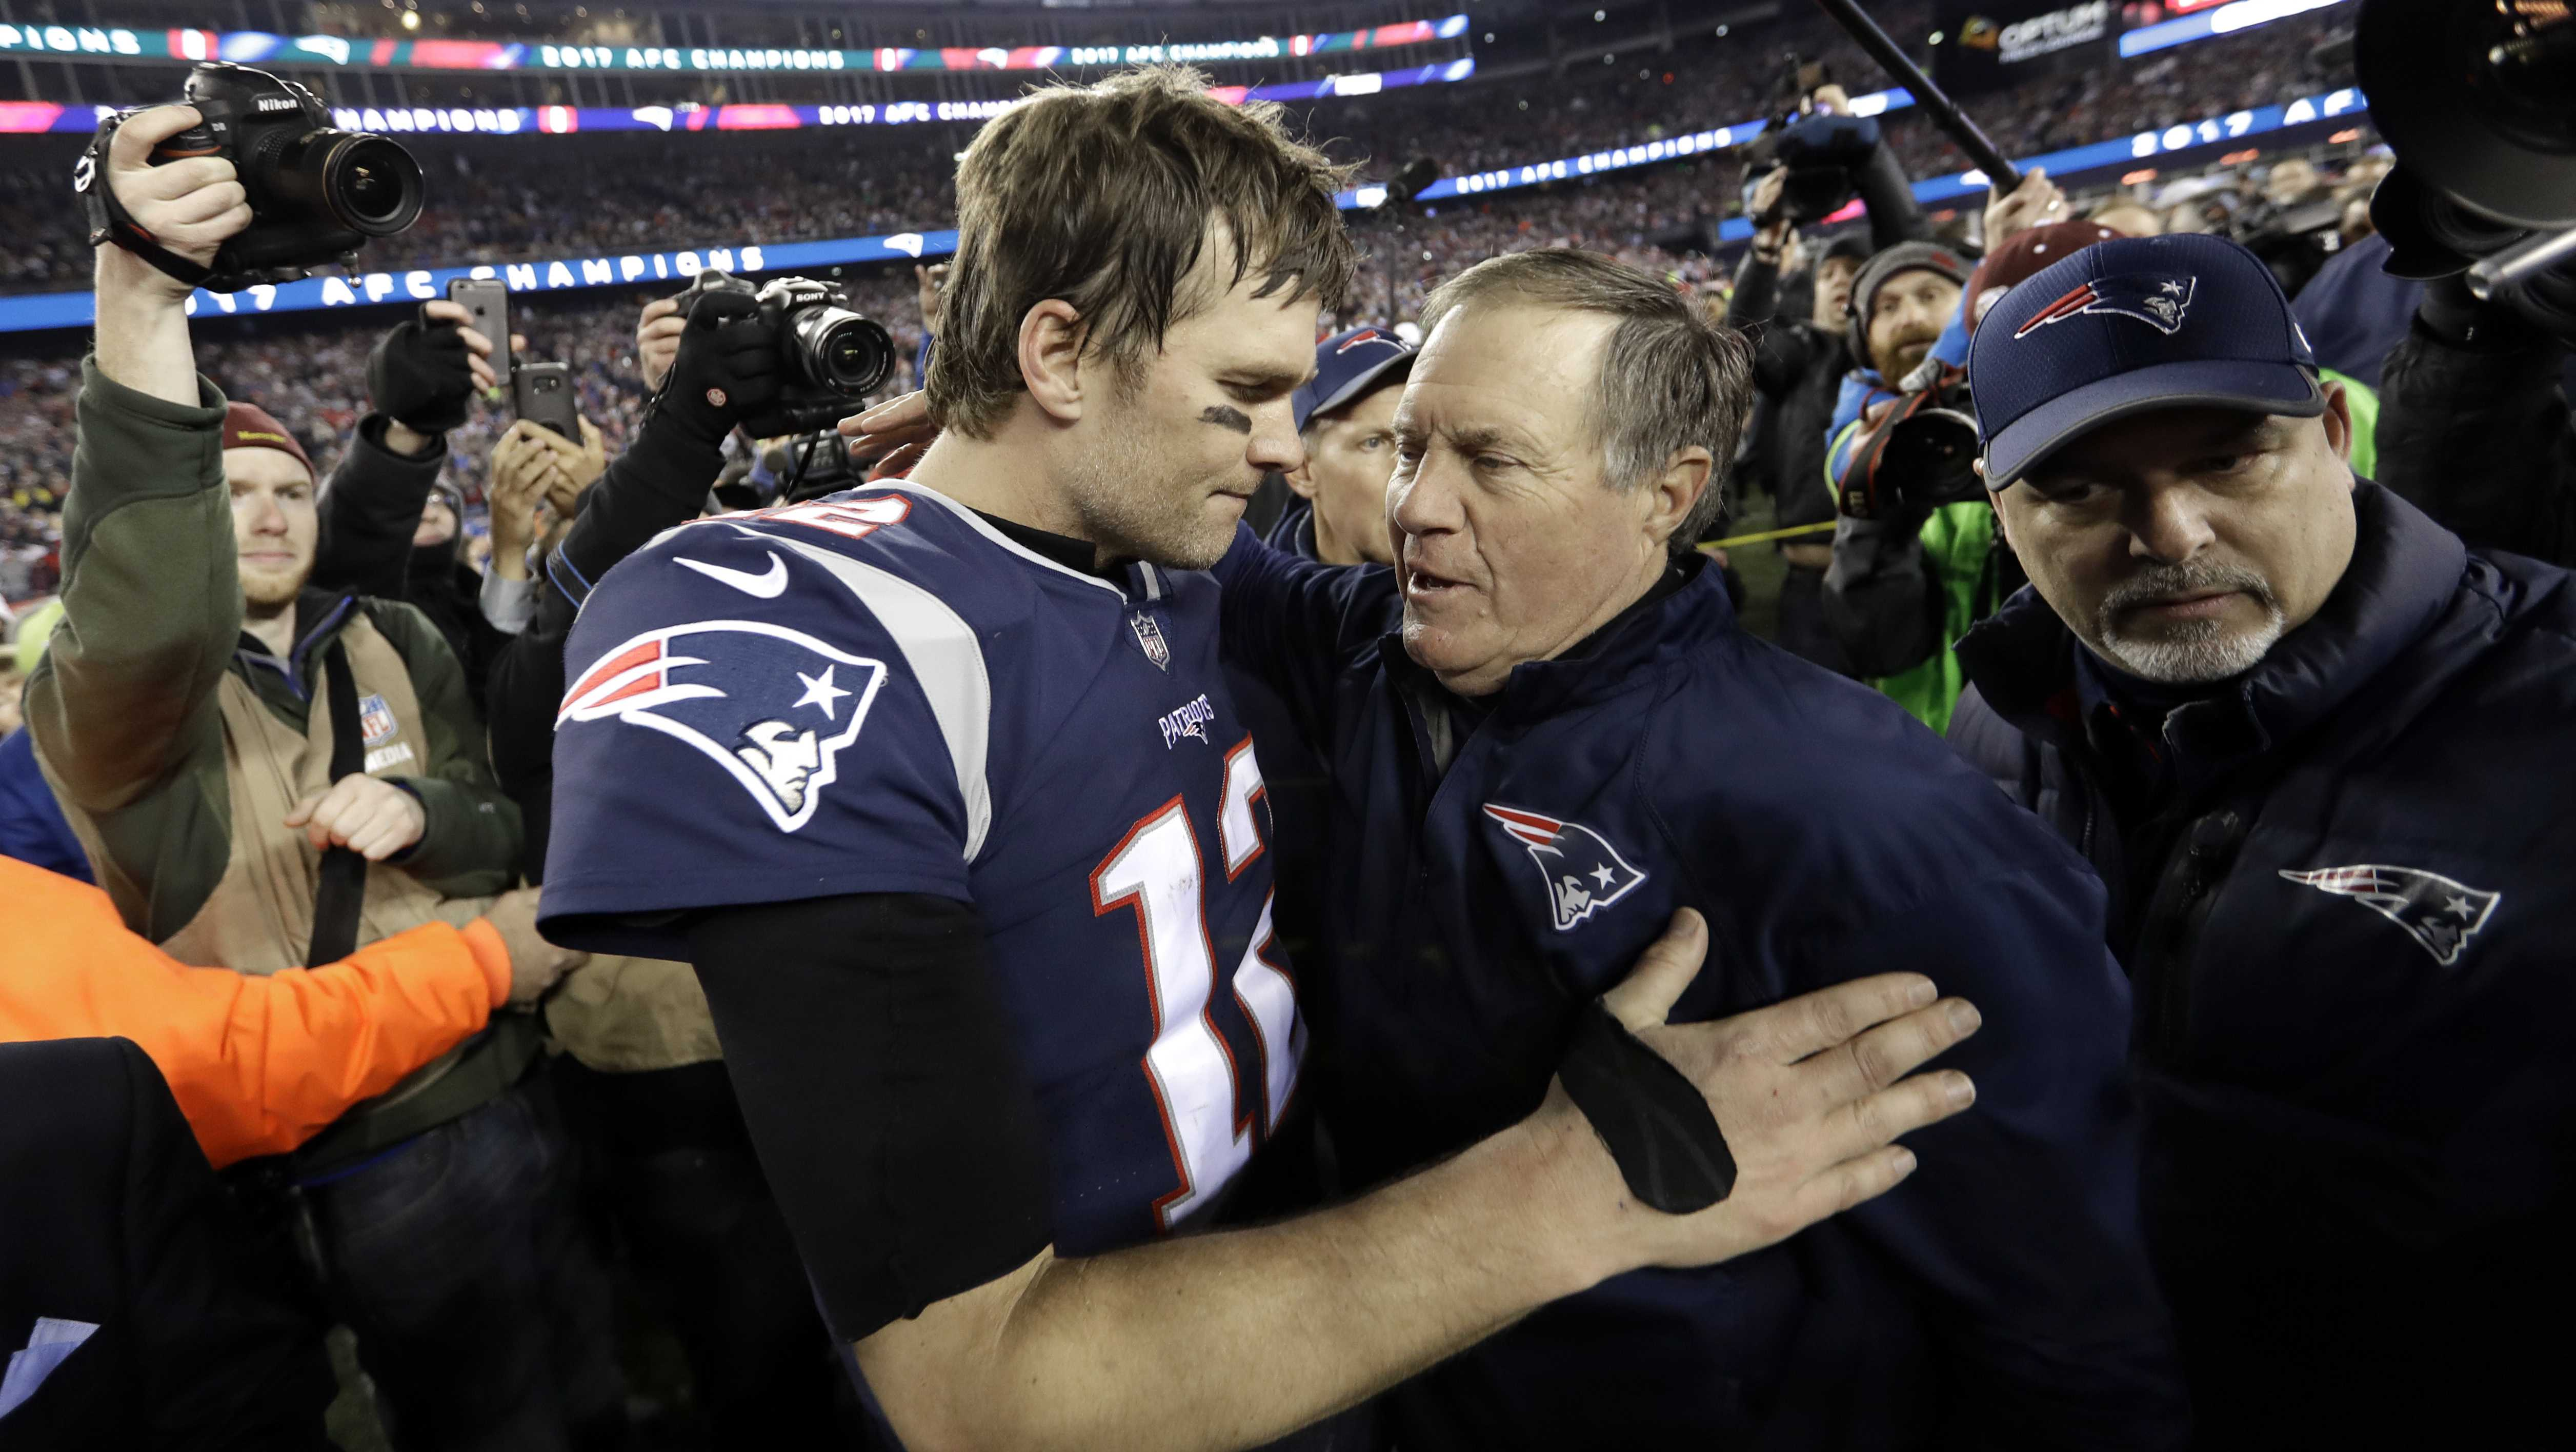 New England Patriots quarterback Tom Brady, left, hugs coach Bill Belichick after the AFC championship NFL football game against the Jacksonville Jaguars, Sunday, Jan. 21, 2018, in Foxborough, Mass. The Patriots won 24-20. (AP Photo/David J. Phillip)